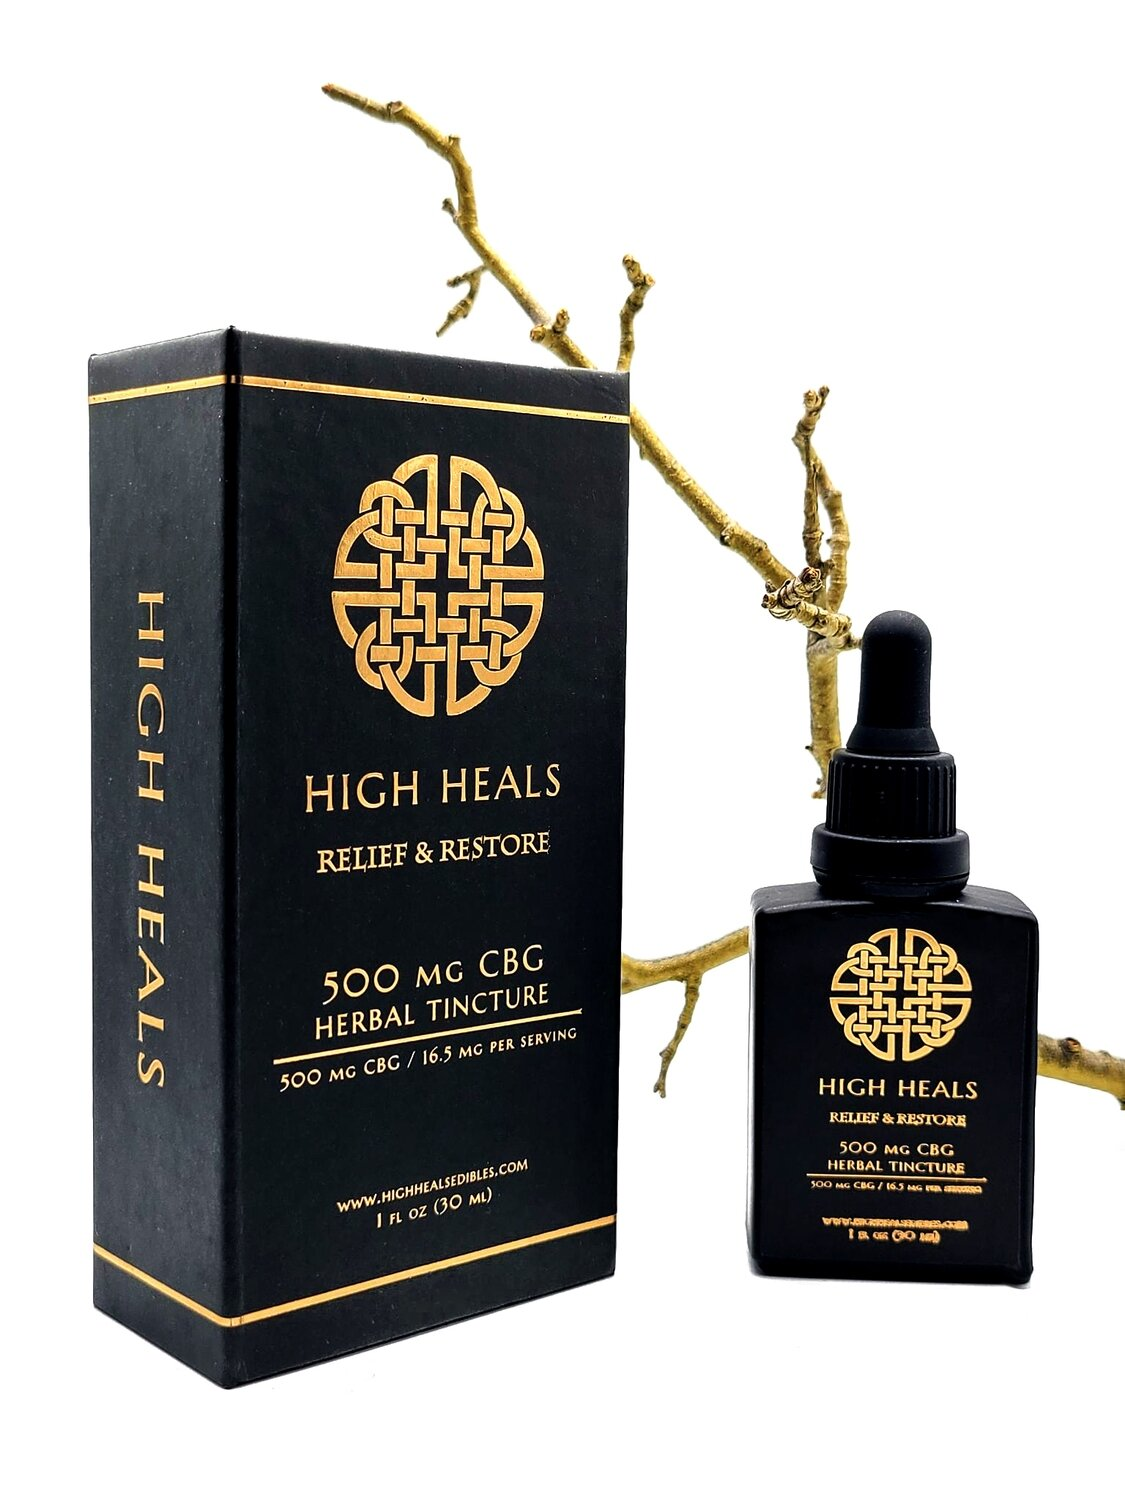 High Heals - 500 MG - CBG Relief and Restore Tincture